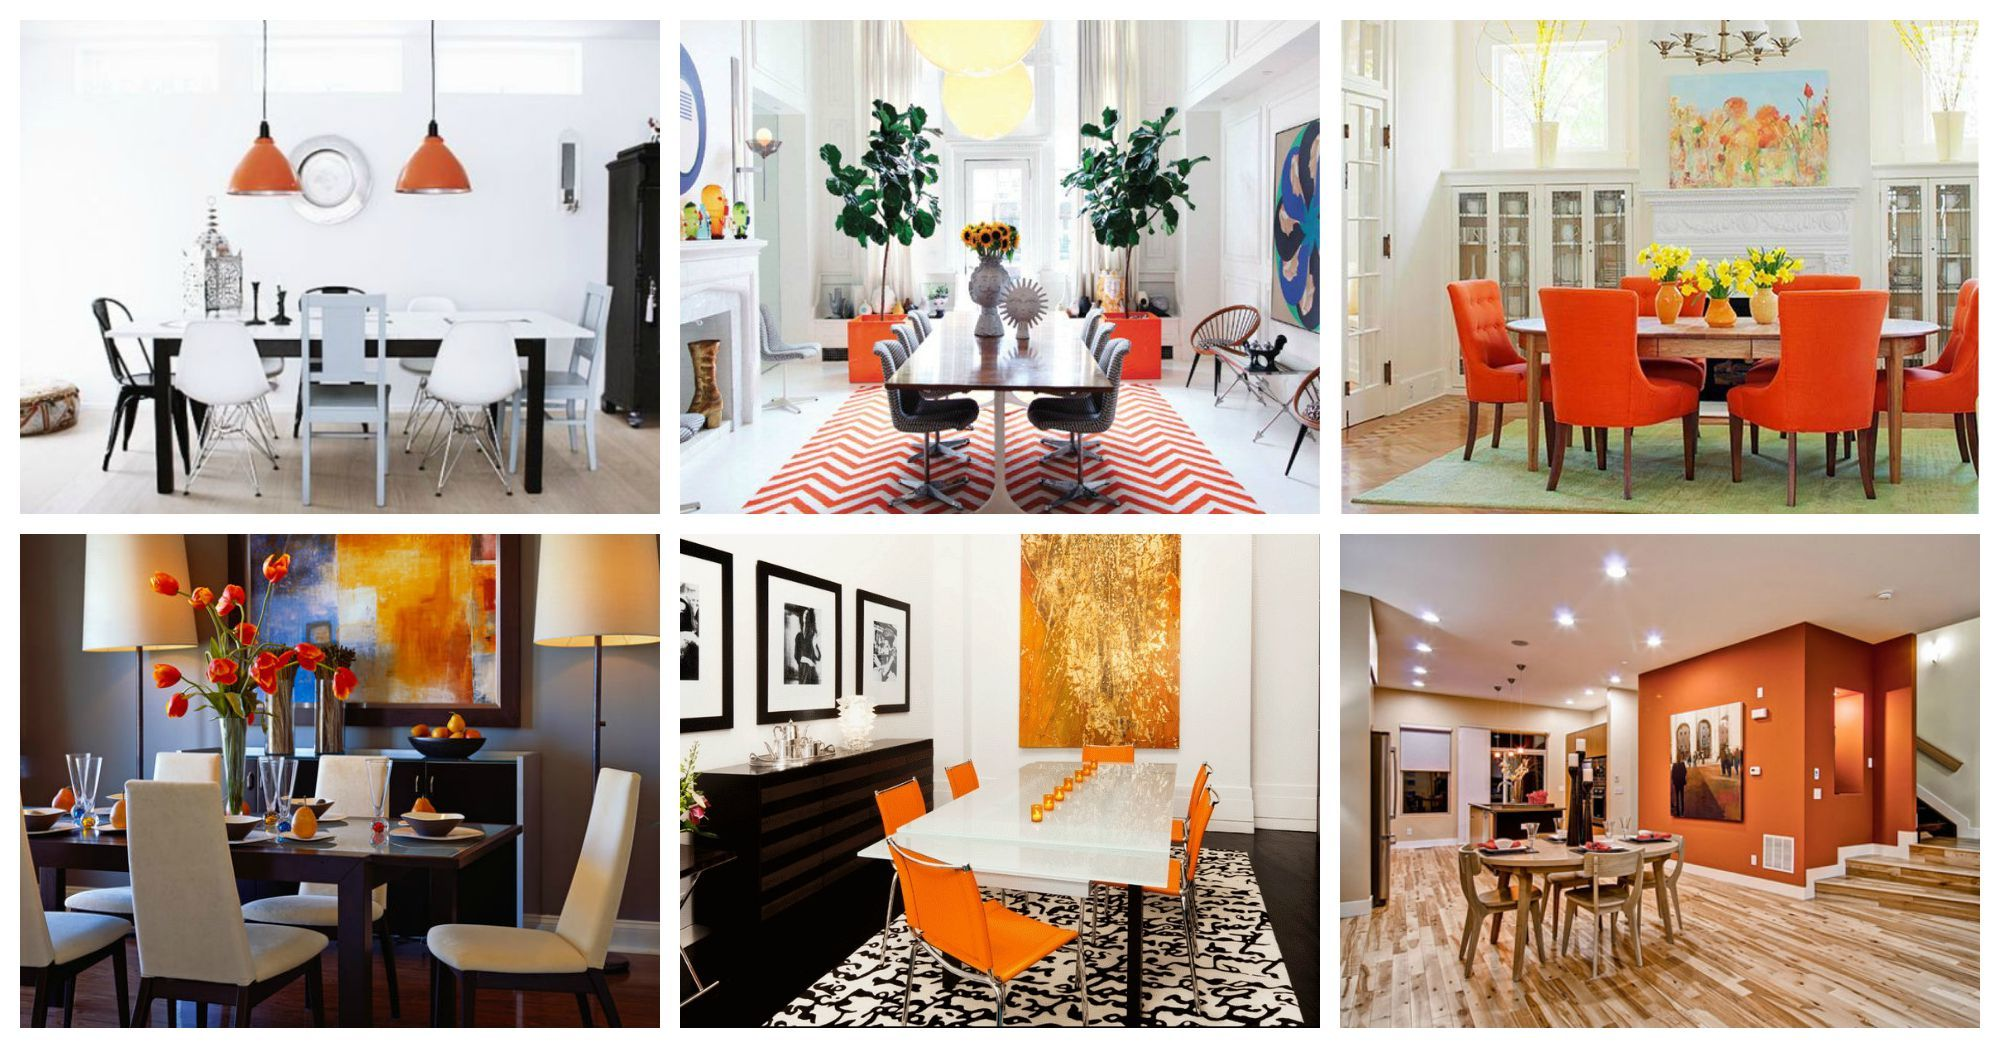 Marvelous Dining Rooms With Orange Accents That Will Catch Your Eye